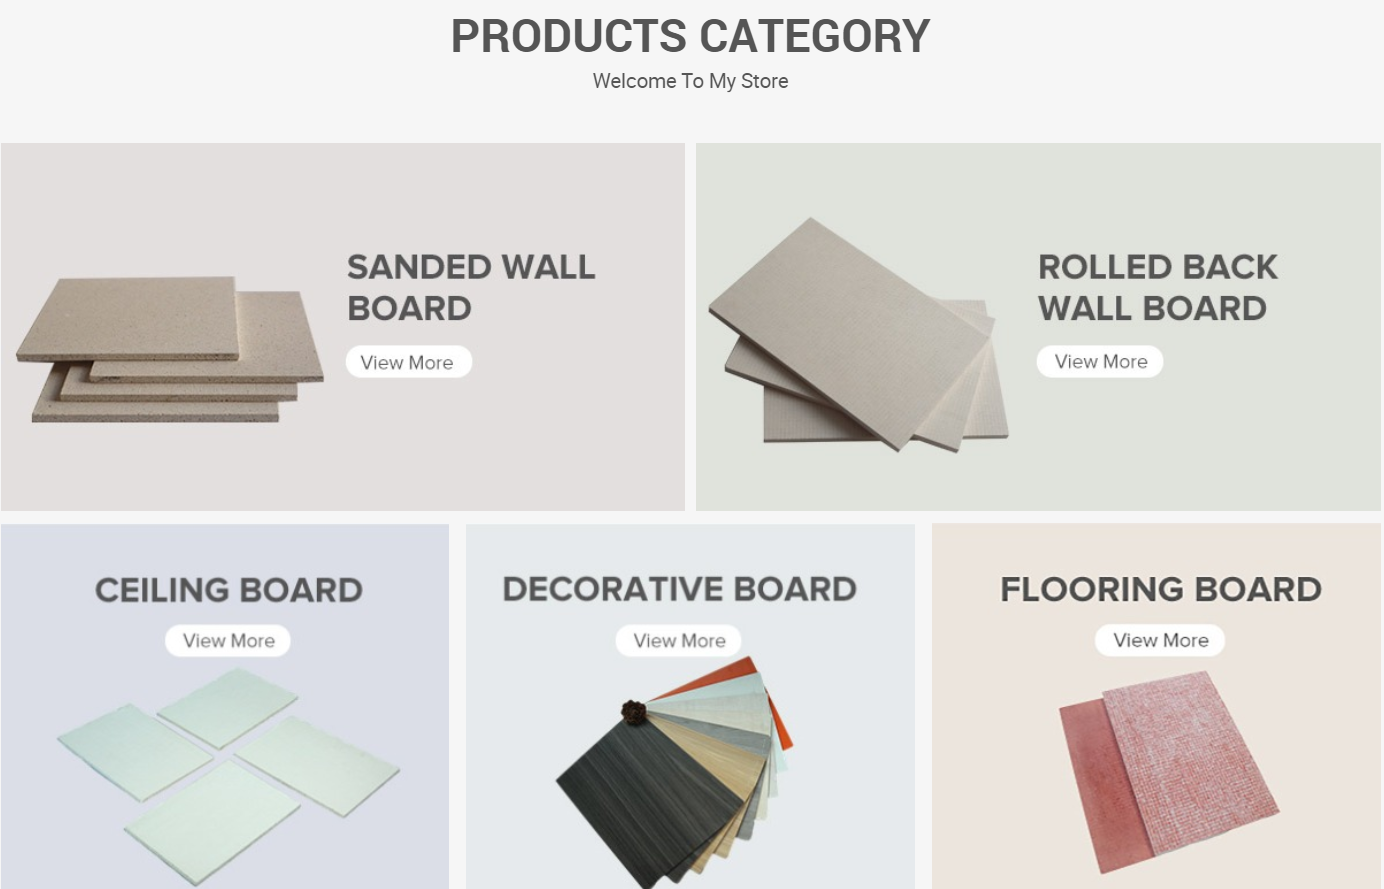 mgo board product category